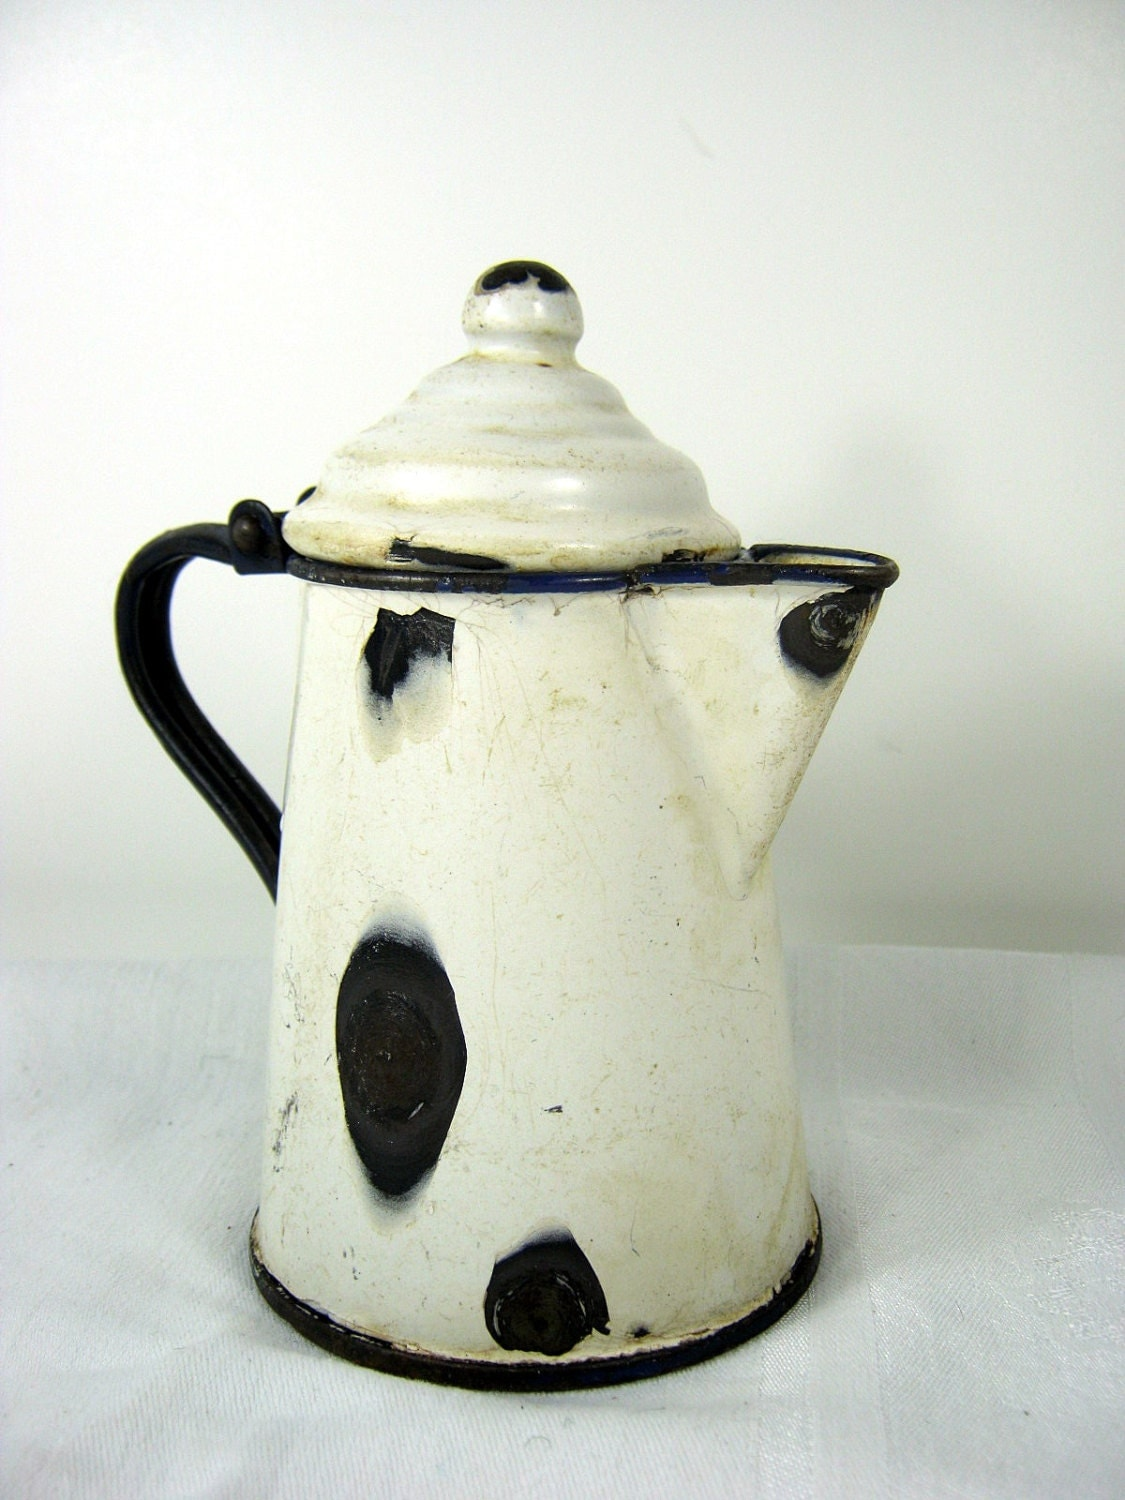 Vintage Enamelware Coffee Pot Creamy White Small Stove Top